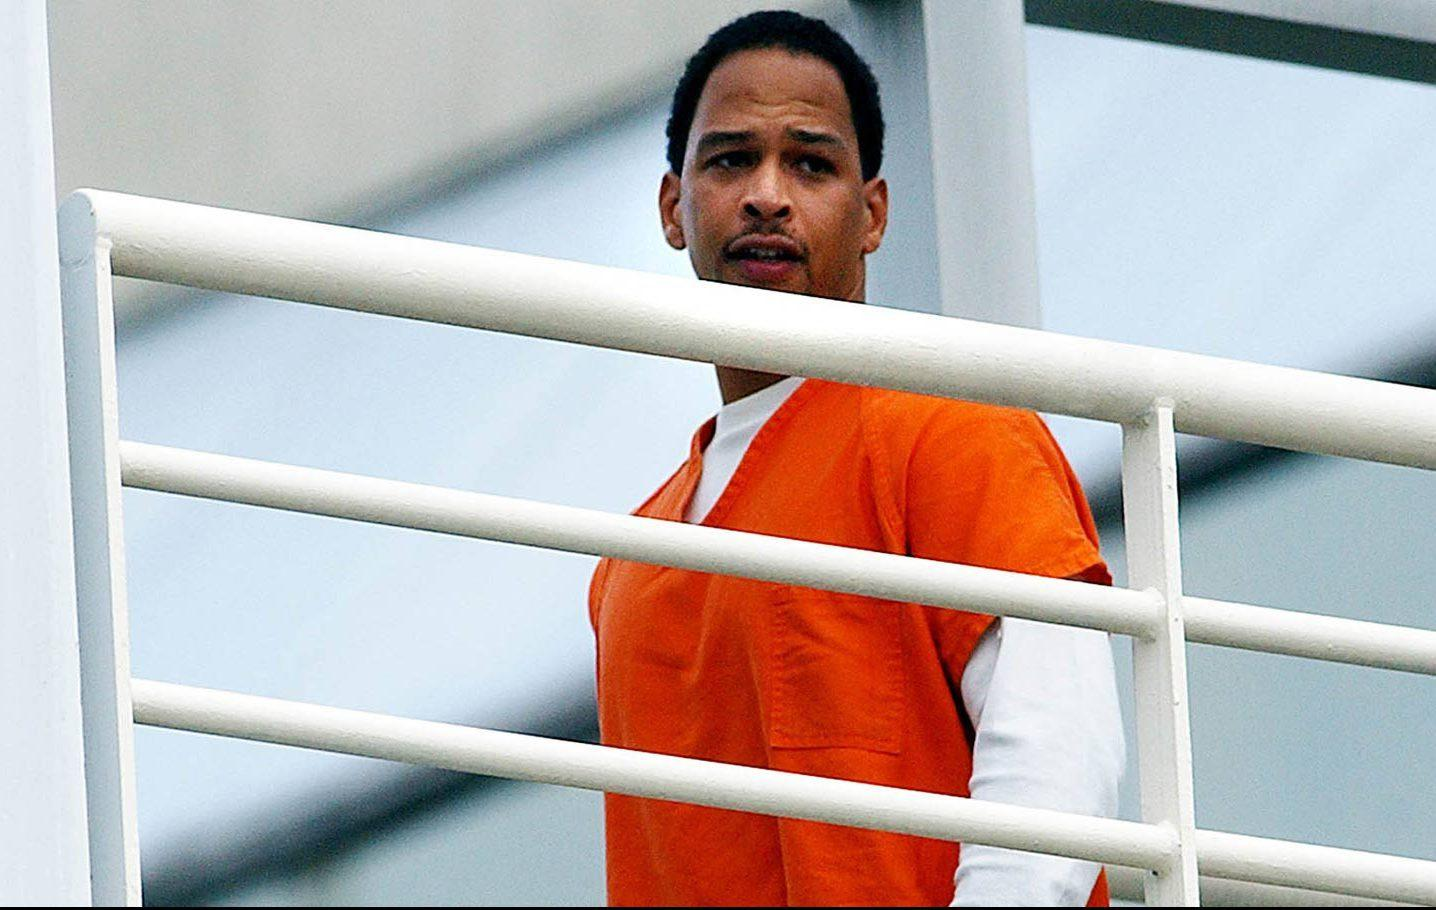 Former NFL player Rae Carruth has served 17 years in prison for conspiracy to murder his pregnant girlfriend Cherica Adams in 1999